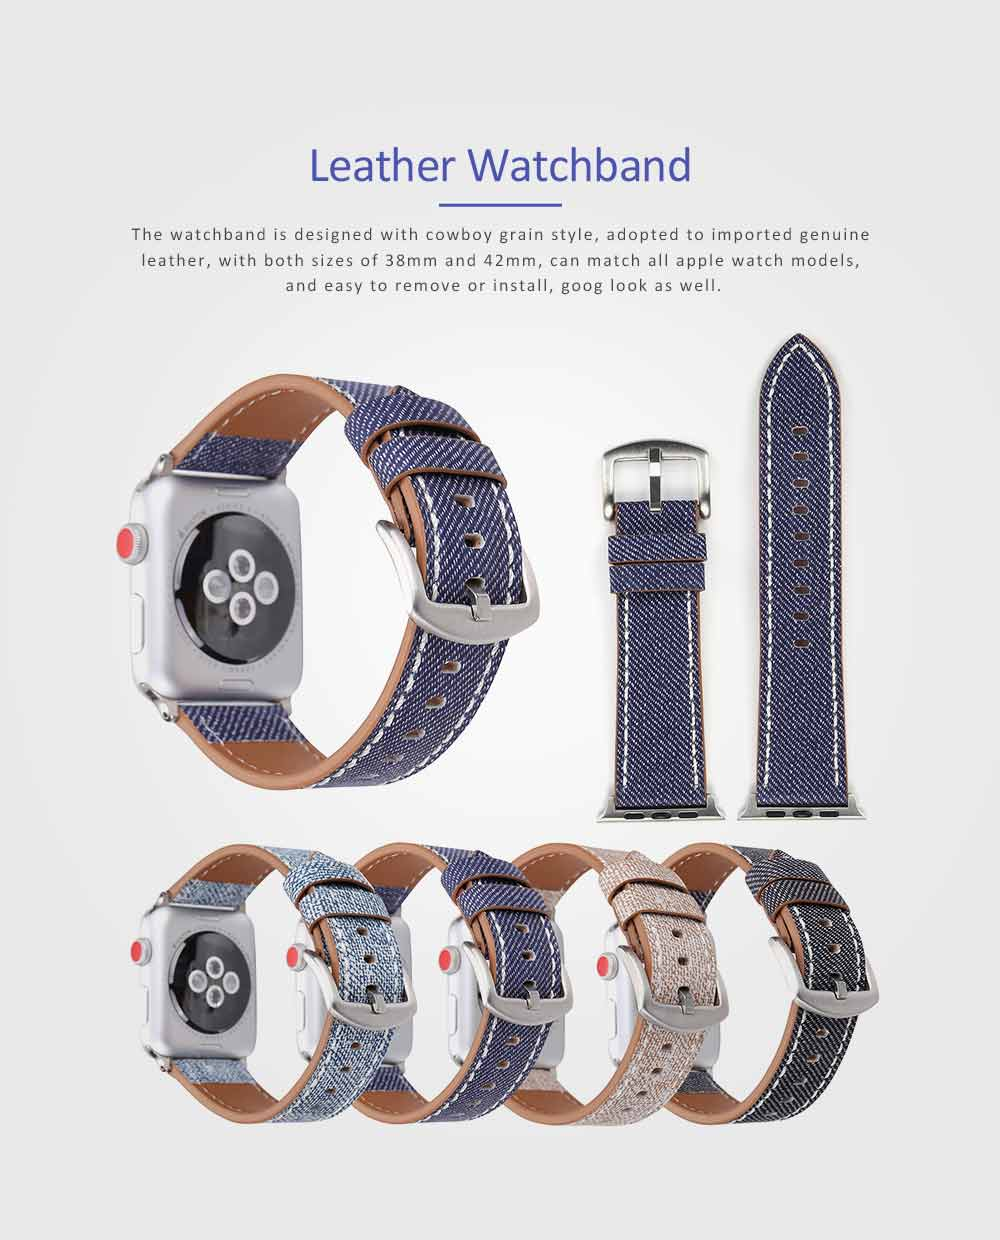 New Watch Band Genuine Leather Strap Cowboy Grain Belt for Apple Watch, 38mm and 42mm 0